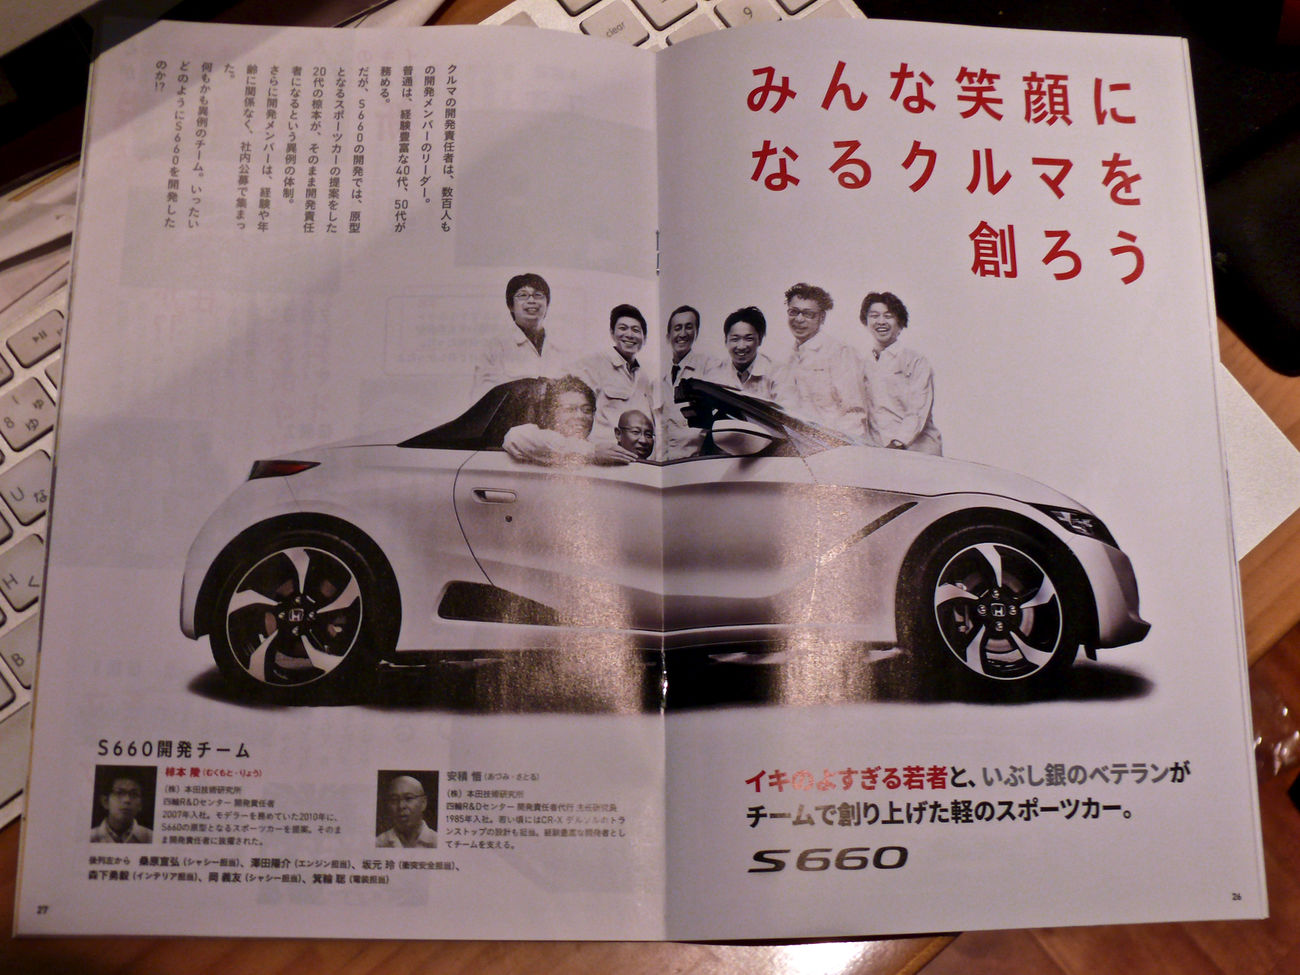 Extraordinary testcase / HONDA Team S660 Suggestions of Craftman : Everyone will create the car which puts on a smile. a quotation from Honda Magazine . HONDA S660 Human Powered Information Kei-car Prodigious Proposition Q Question Quotation Quote Sportscar Testcases Text OMG 😬Why Did I Take Such One😔